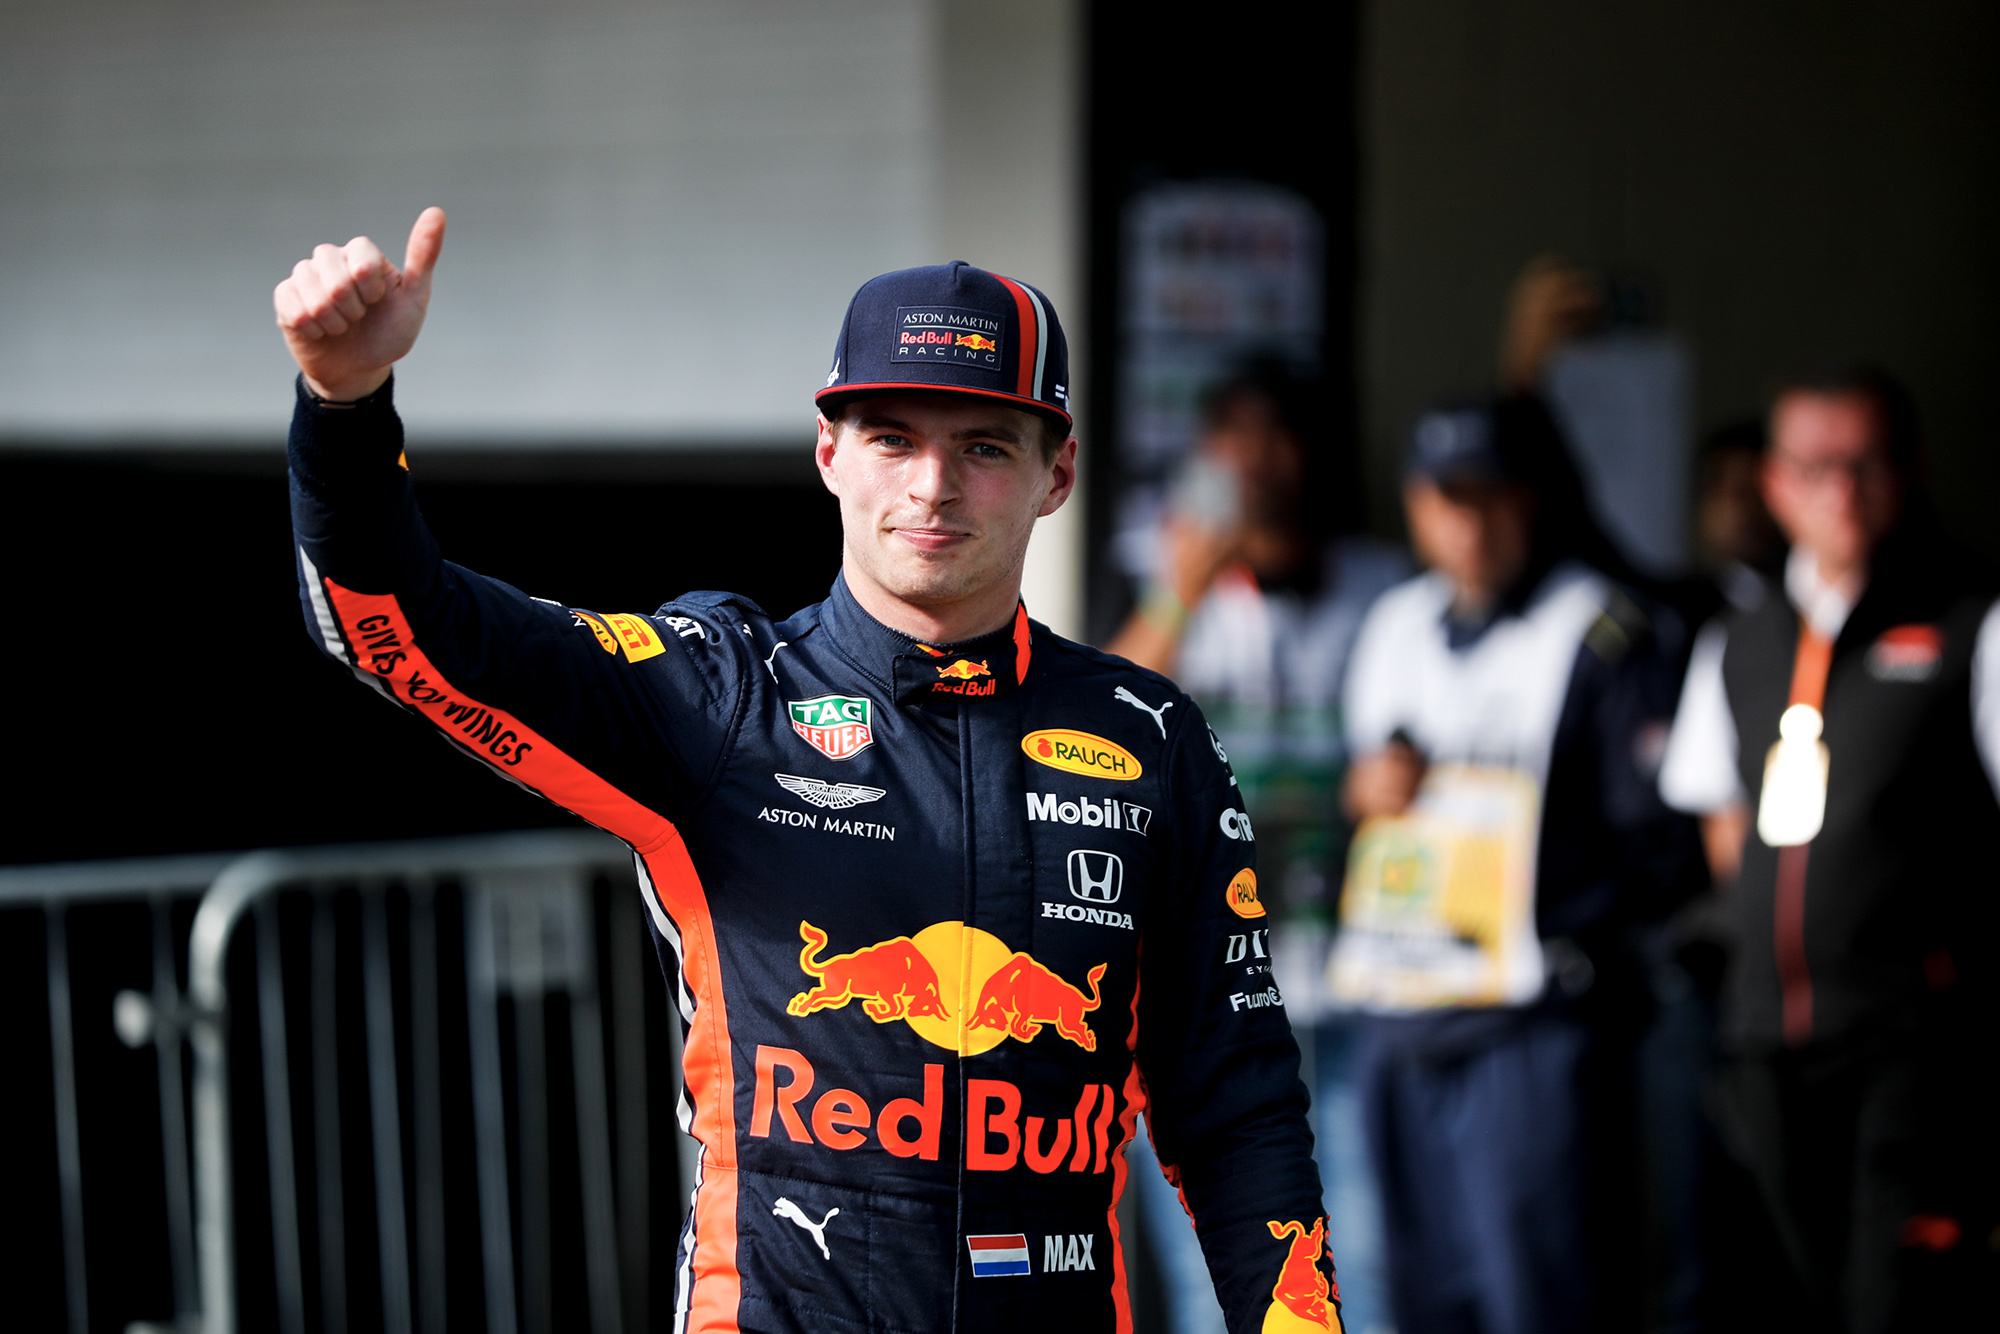 Max Verstappen gives a thumbs up after clinching pole position at the 2019 F1 Brazilian Grand prix